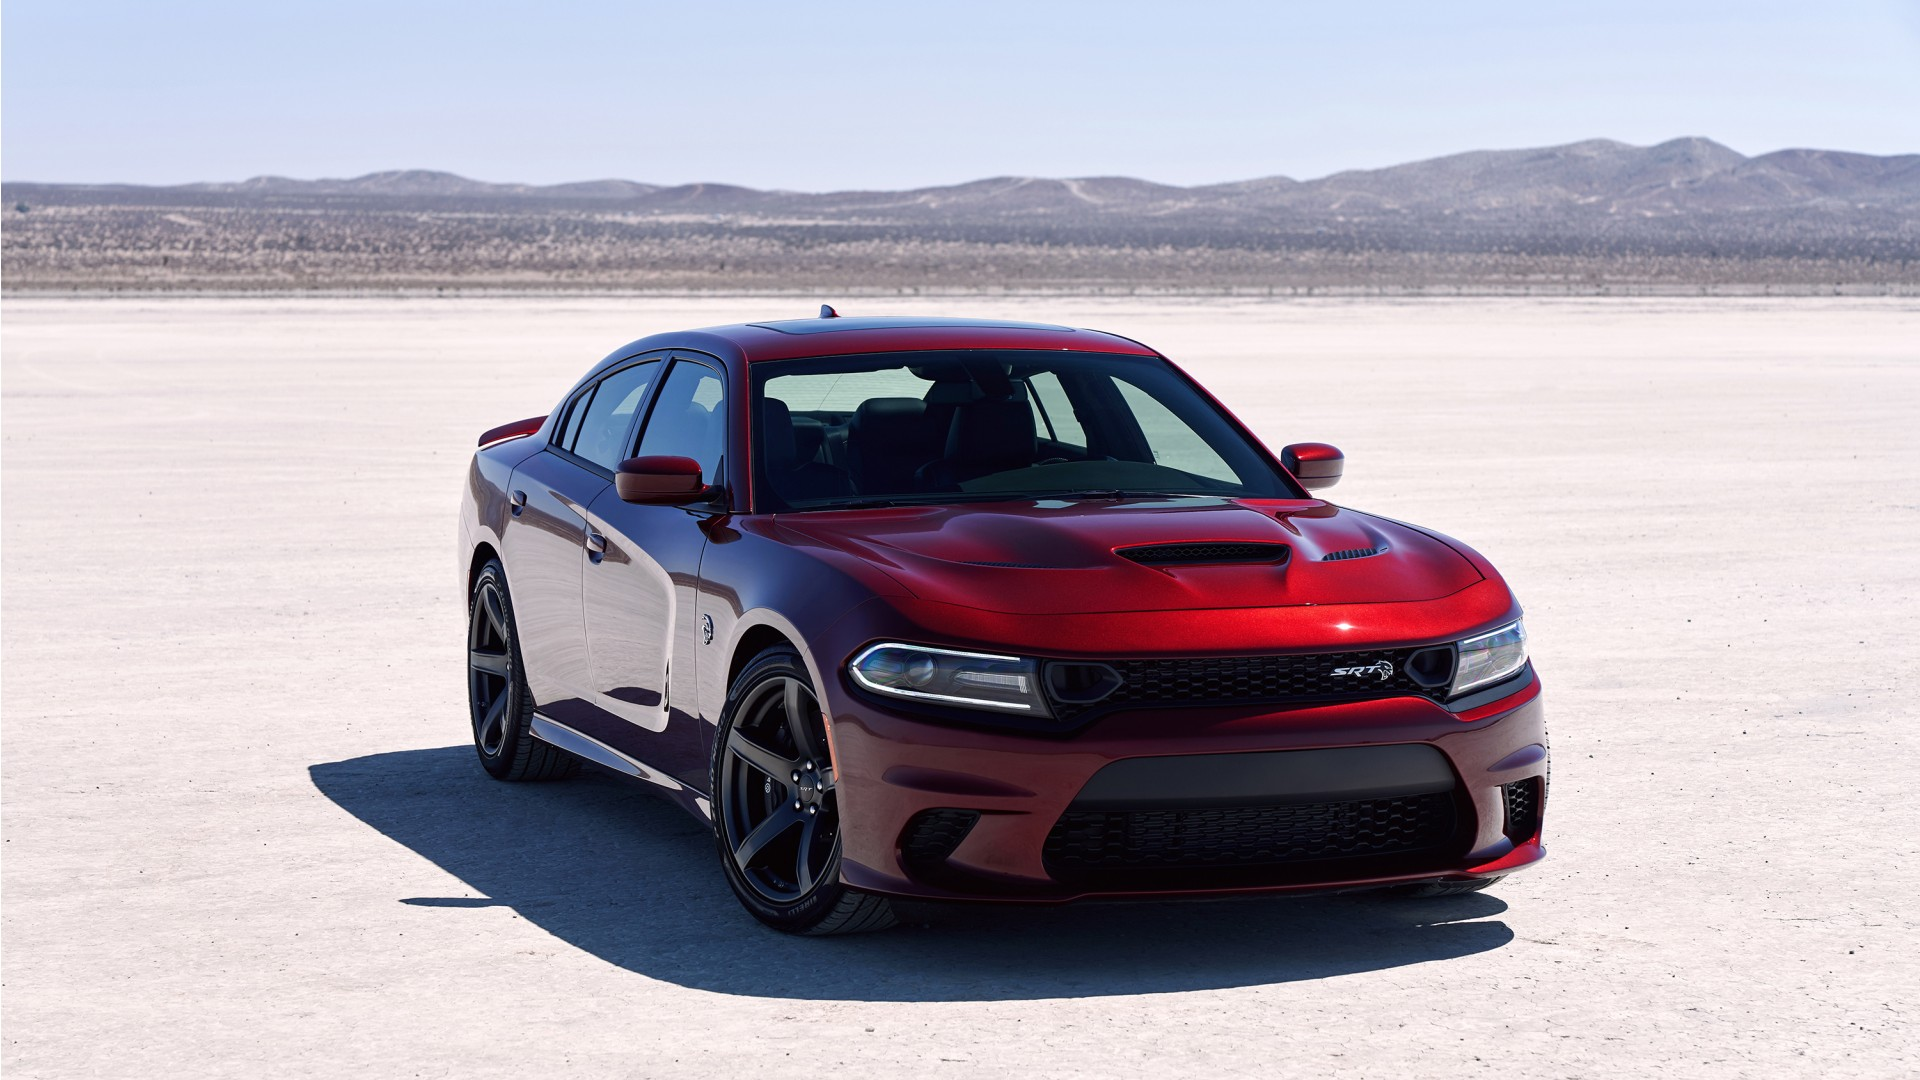 2019 Dodge Charger Srt Hellcat Wallpaper Hd Car